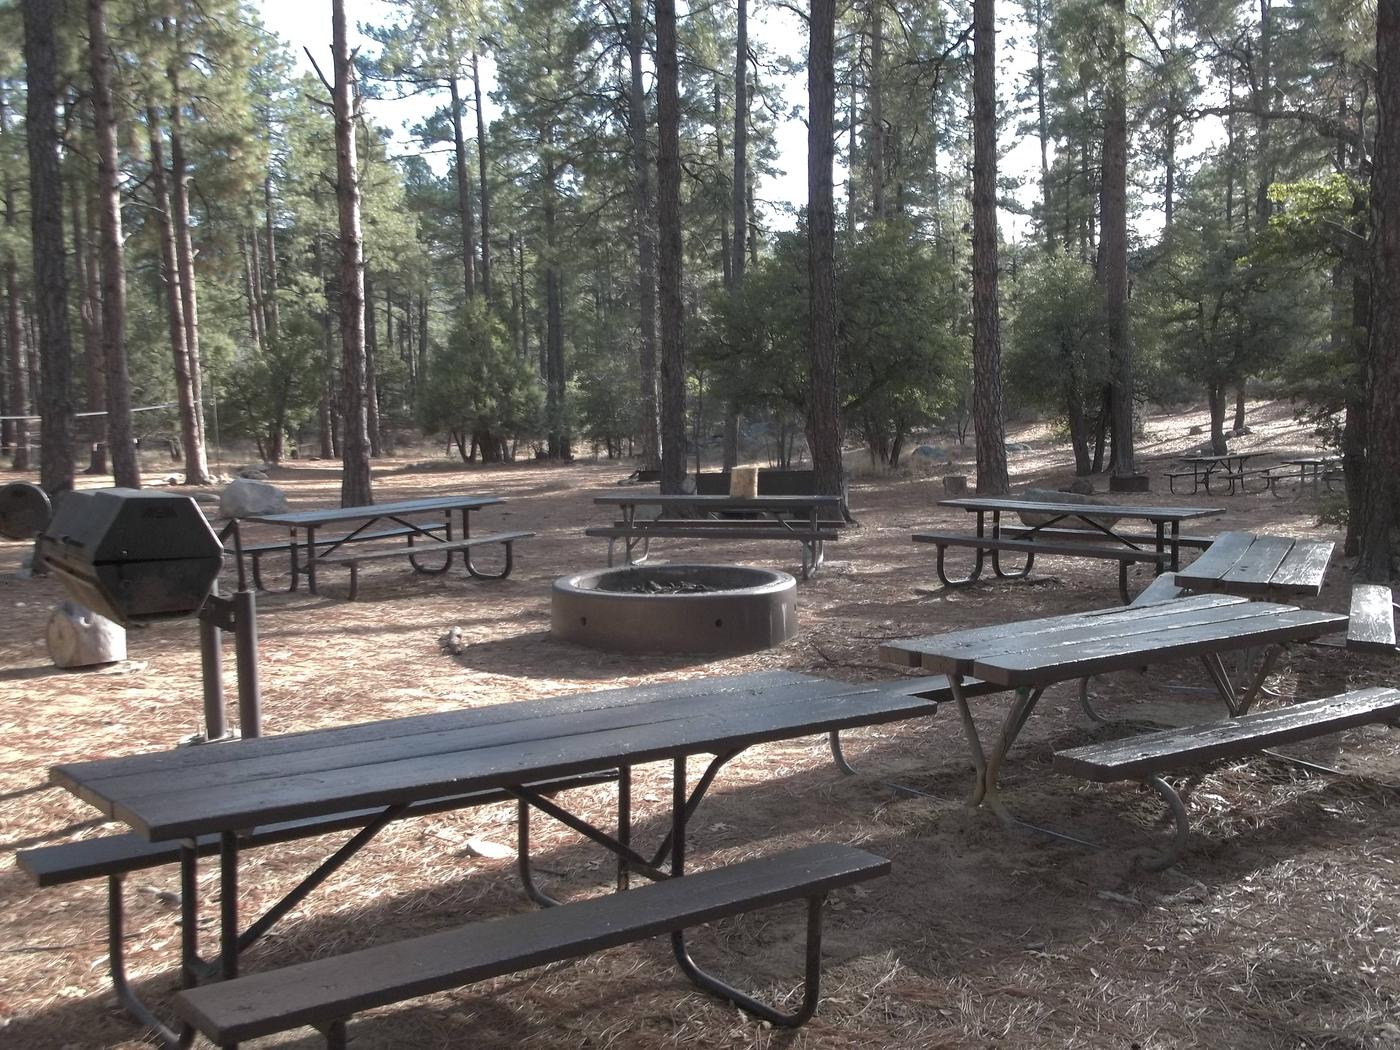 UPPER WOLF CREEK GROUP CAMP FIRE PIT Large fire pit located at the center of the group site, Charcoal grills are also available around the fire pit and at additional sites within the group site.